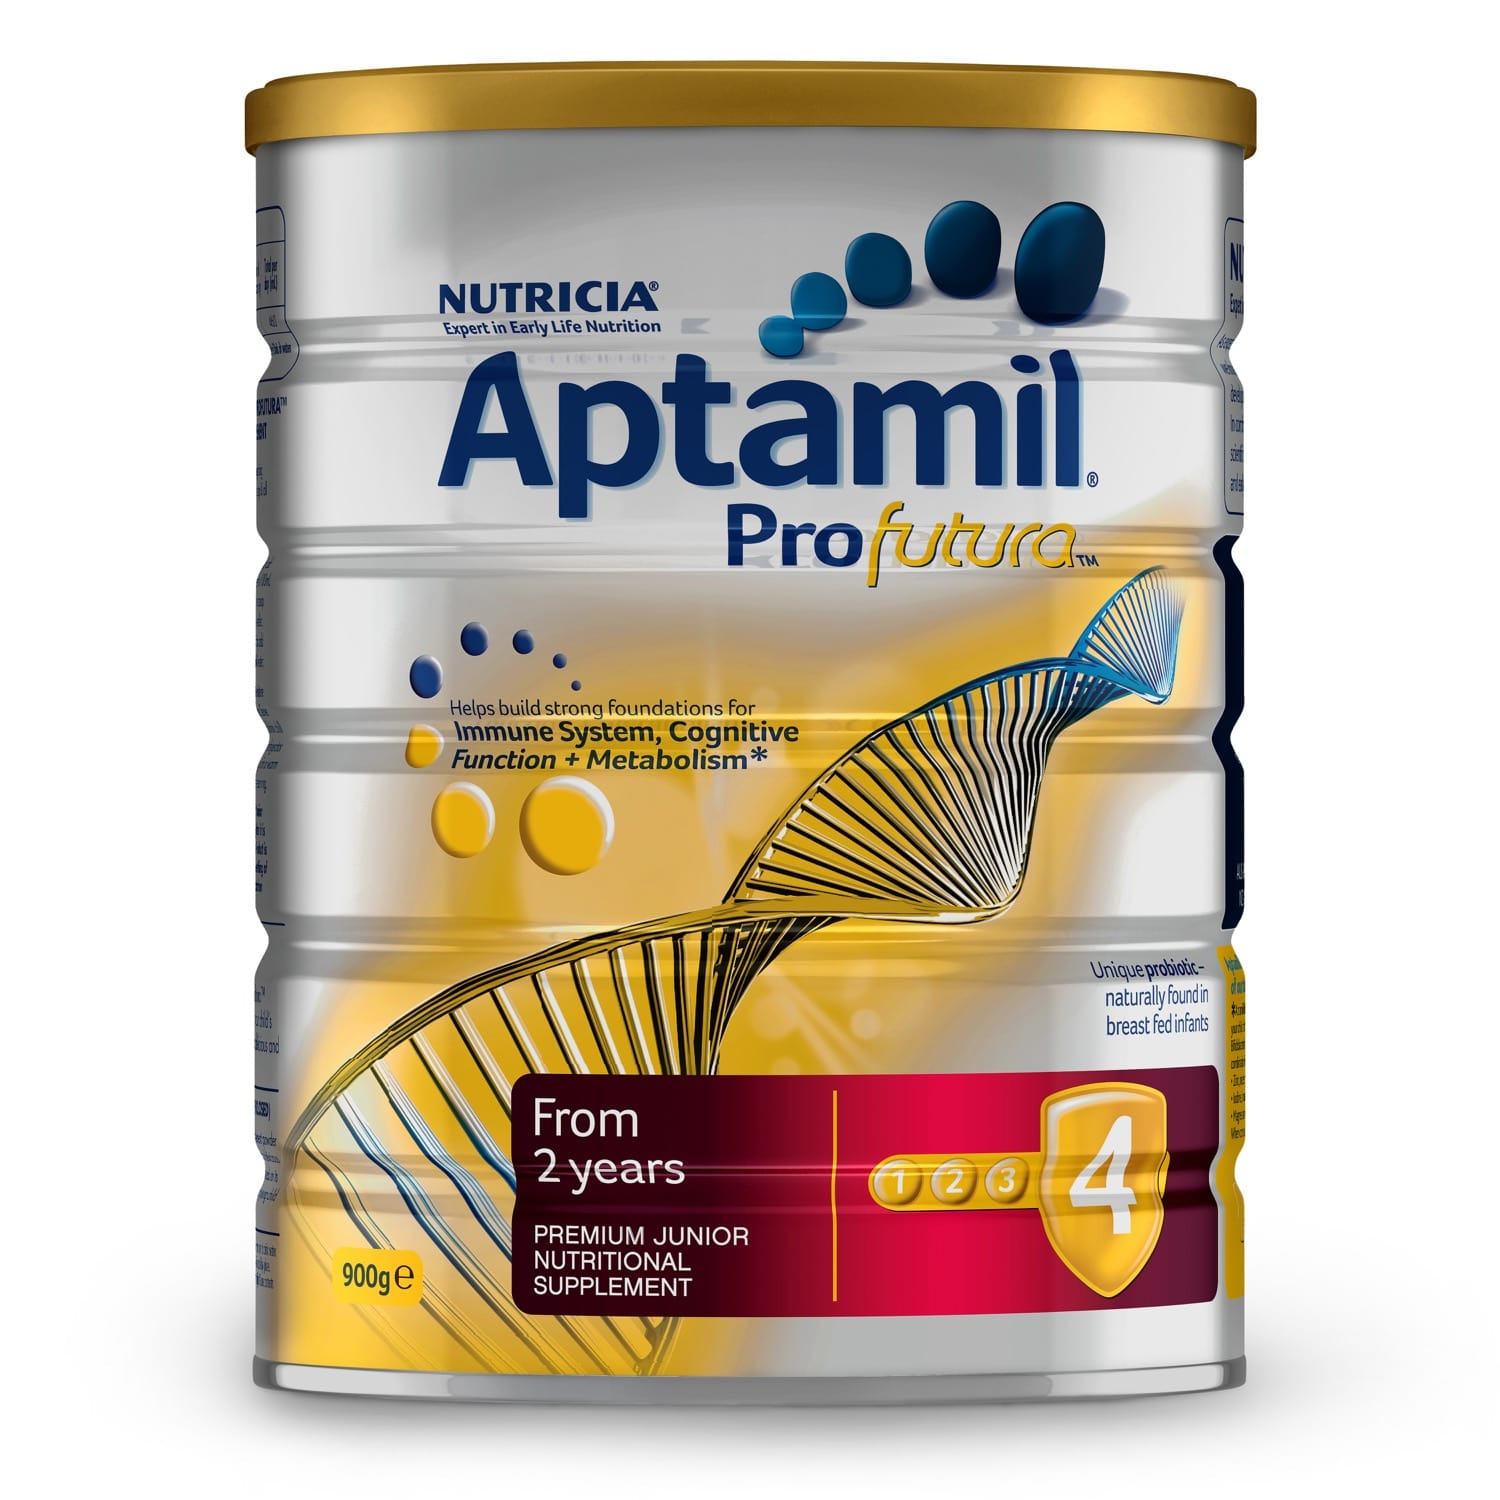 Aptamil Profutura Junior Nutritional Supplement 900g